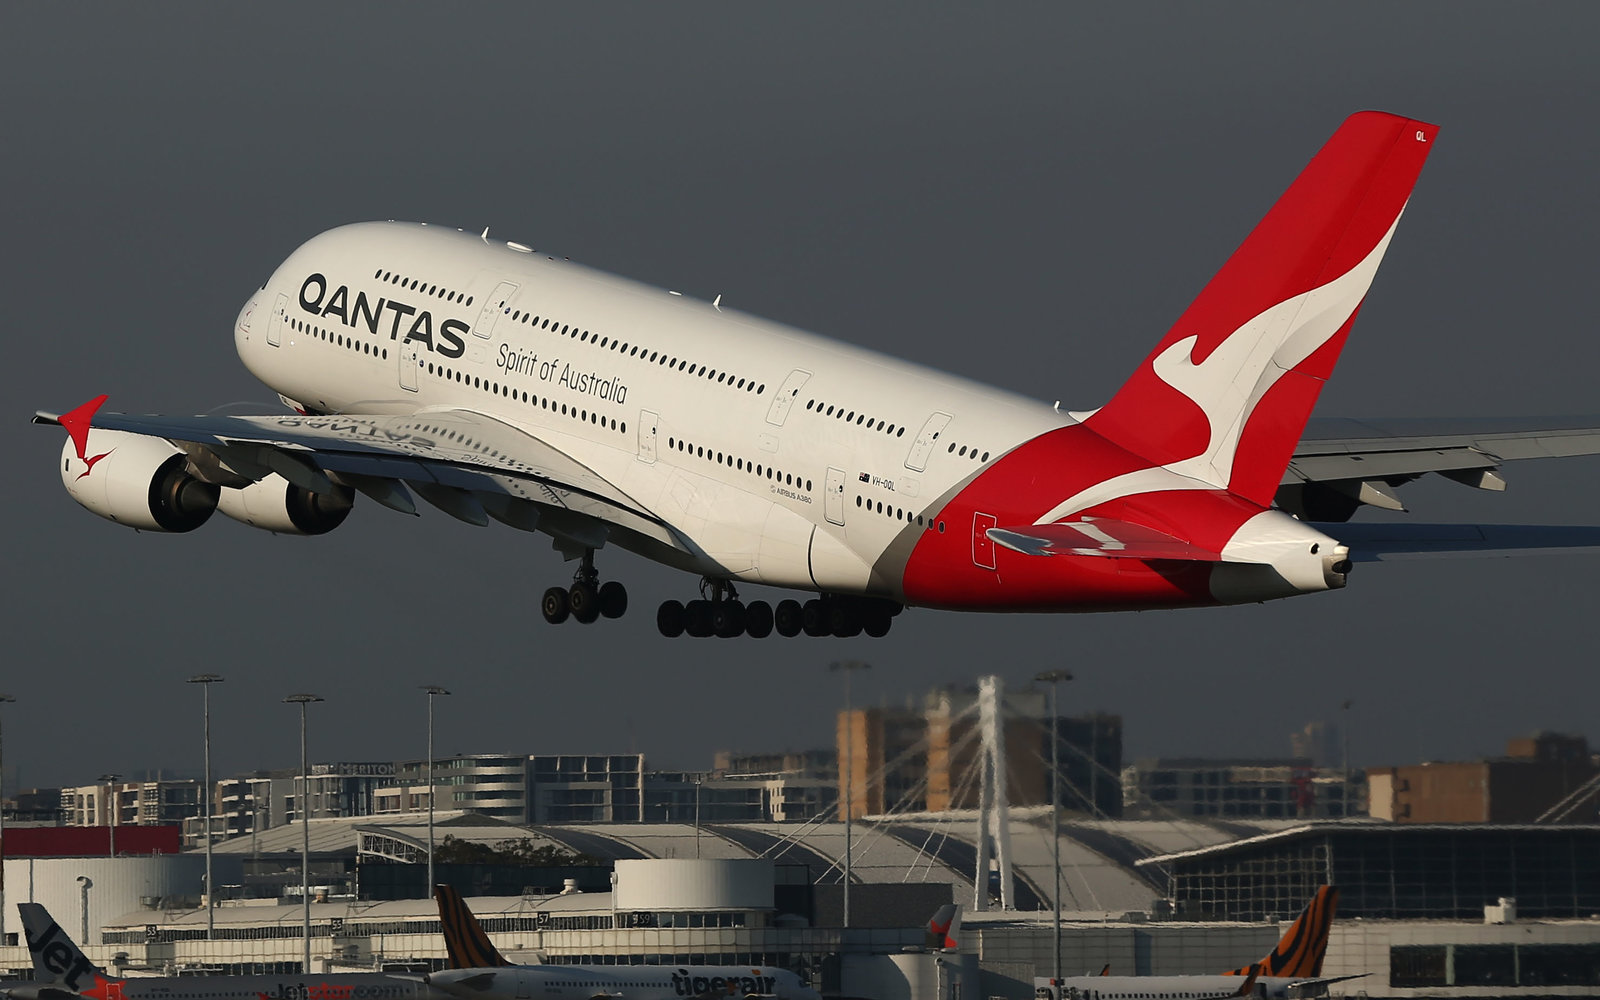 In latest pledge to counteract climate change, Qantas reveals their plan